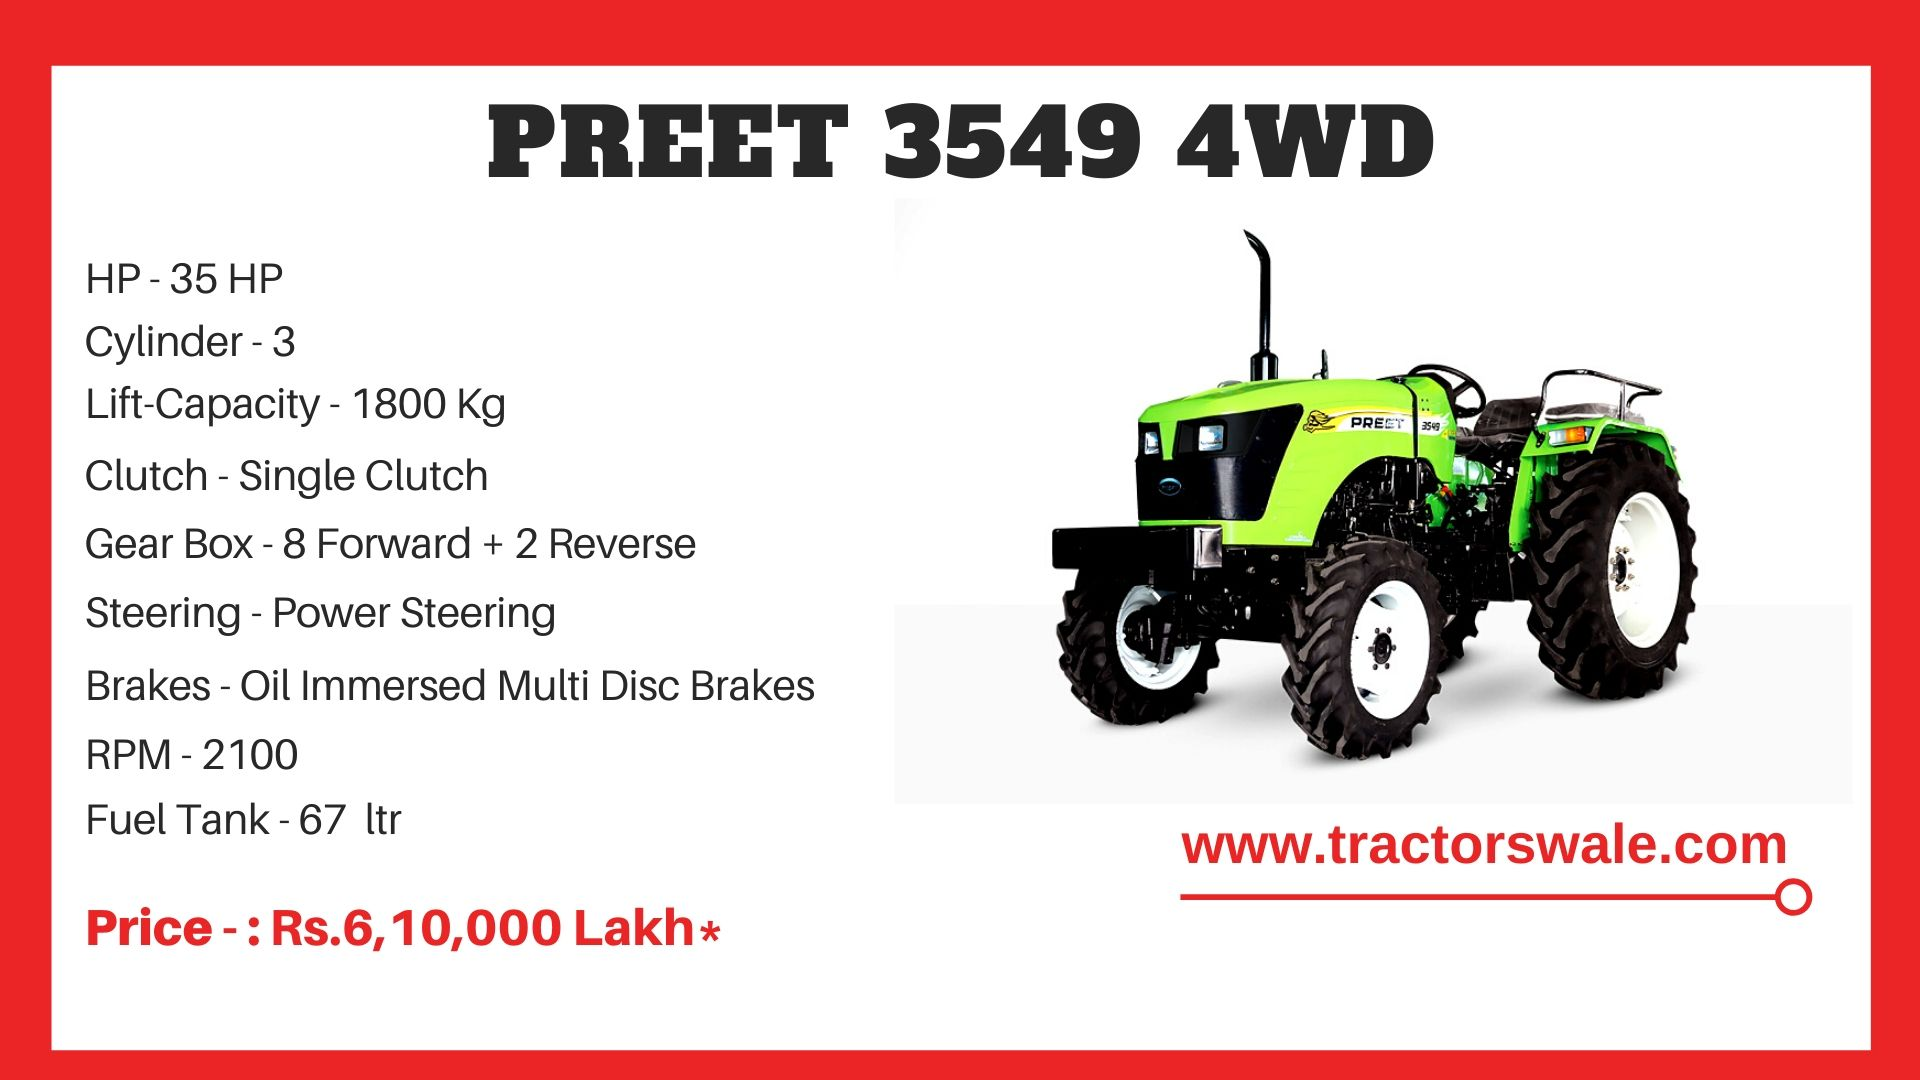 Preet 3549 4WD tractor Price